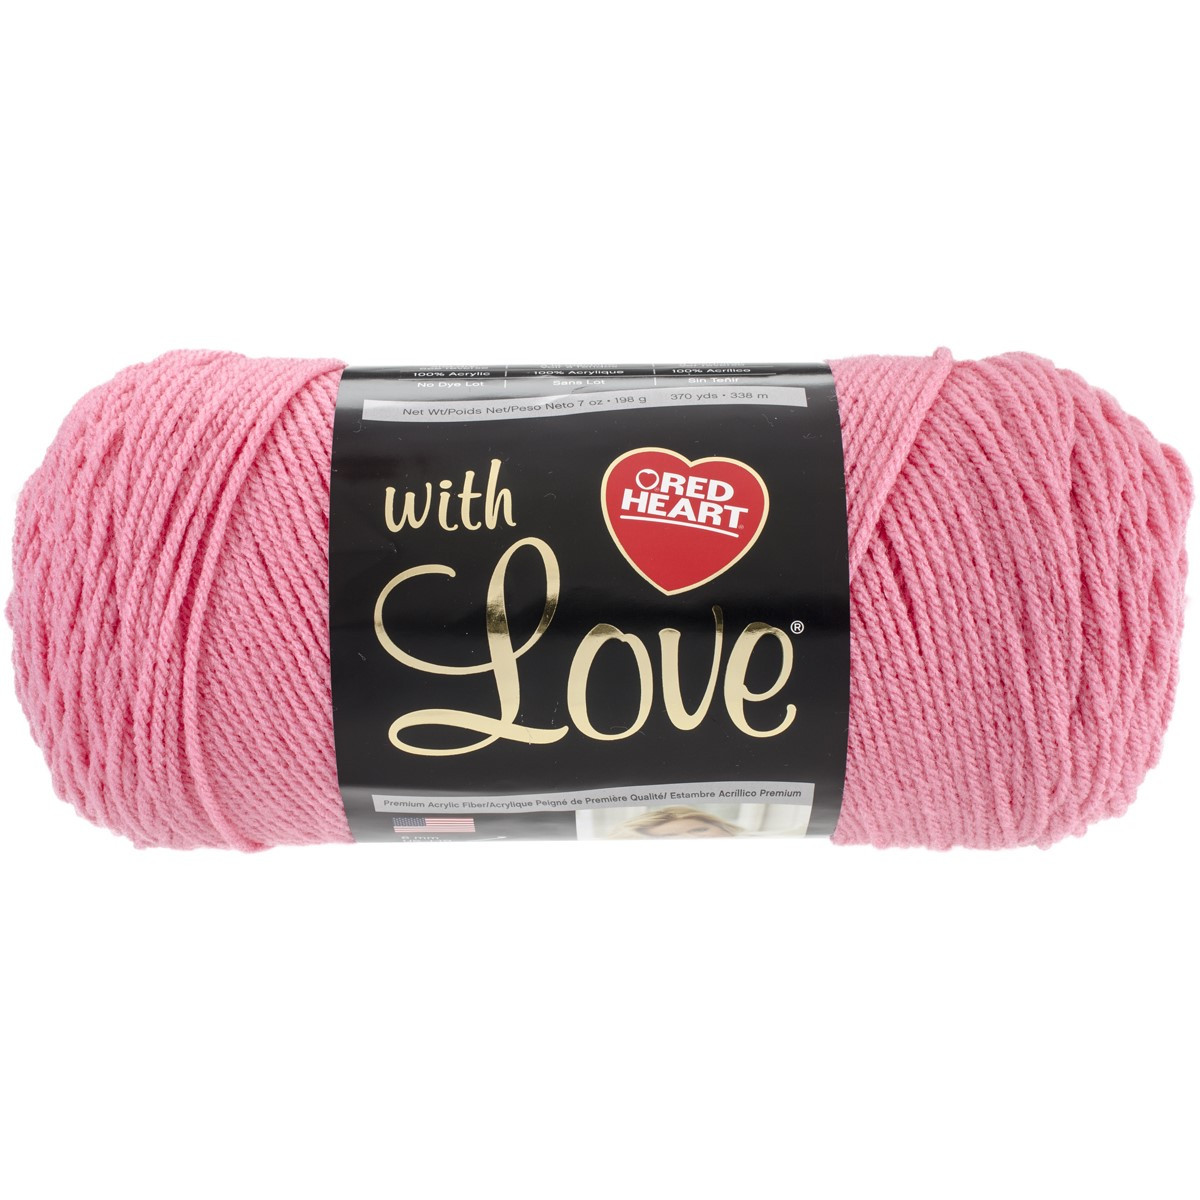 Awesome Red Heart with Love Yarn Red Heart with Love Yarn Colors Of Wonderful 40 Ideas Red Heart with Love Yarn Colors